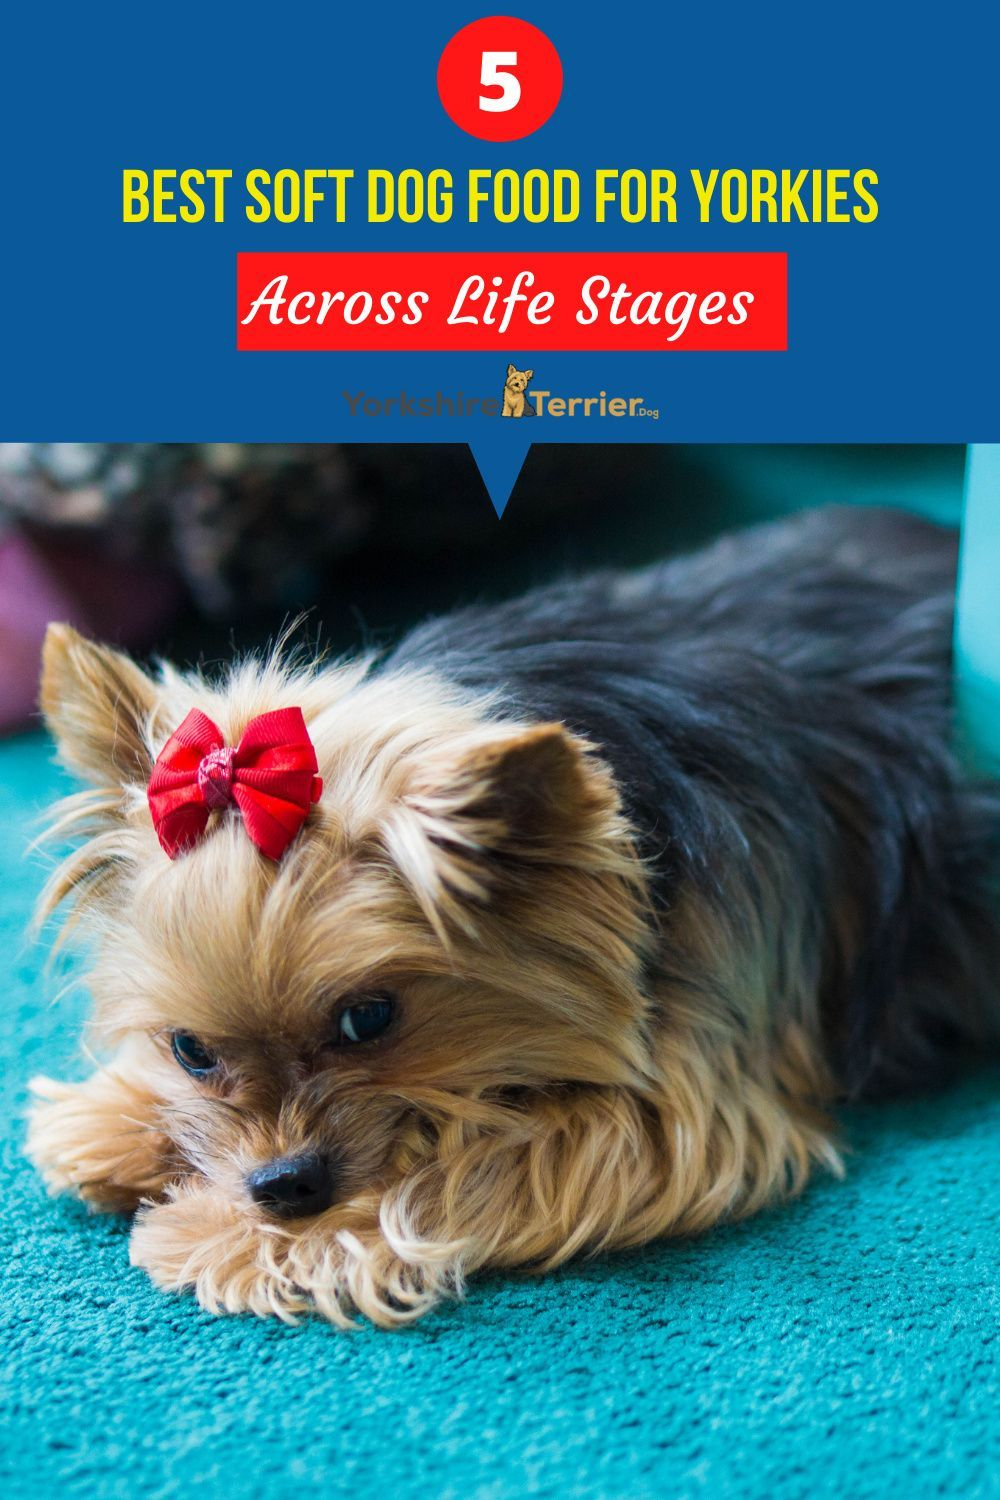 5 Best Soft Dog Food For Yorkies Across Life Stages In 2020 Yorkie Dog Food Recipes Best Dog Food